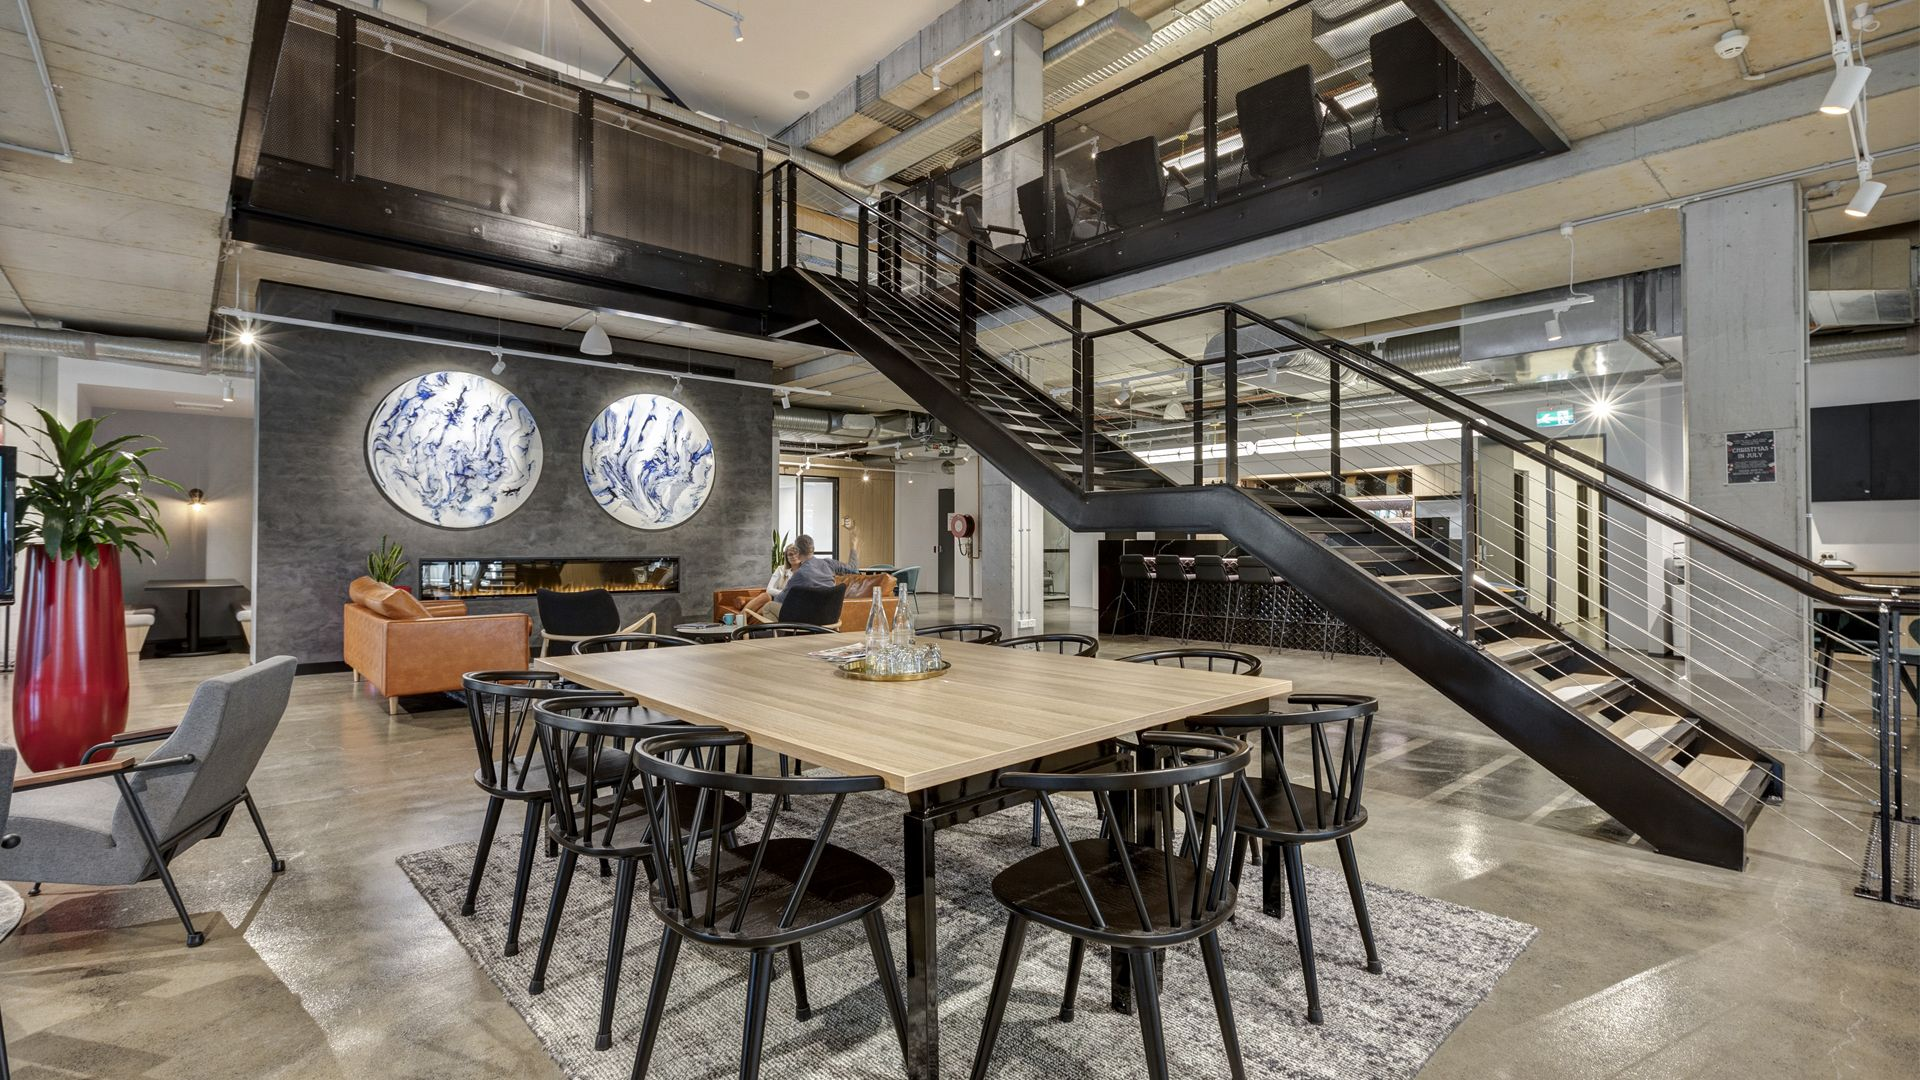 Co-Working Space and On-Site Hotel Invading Hotel Space